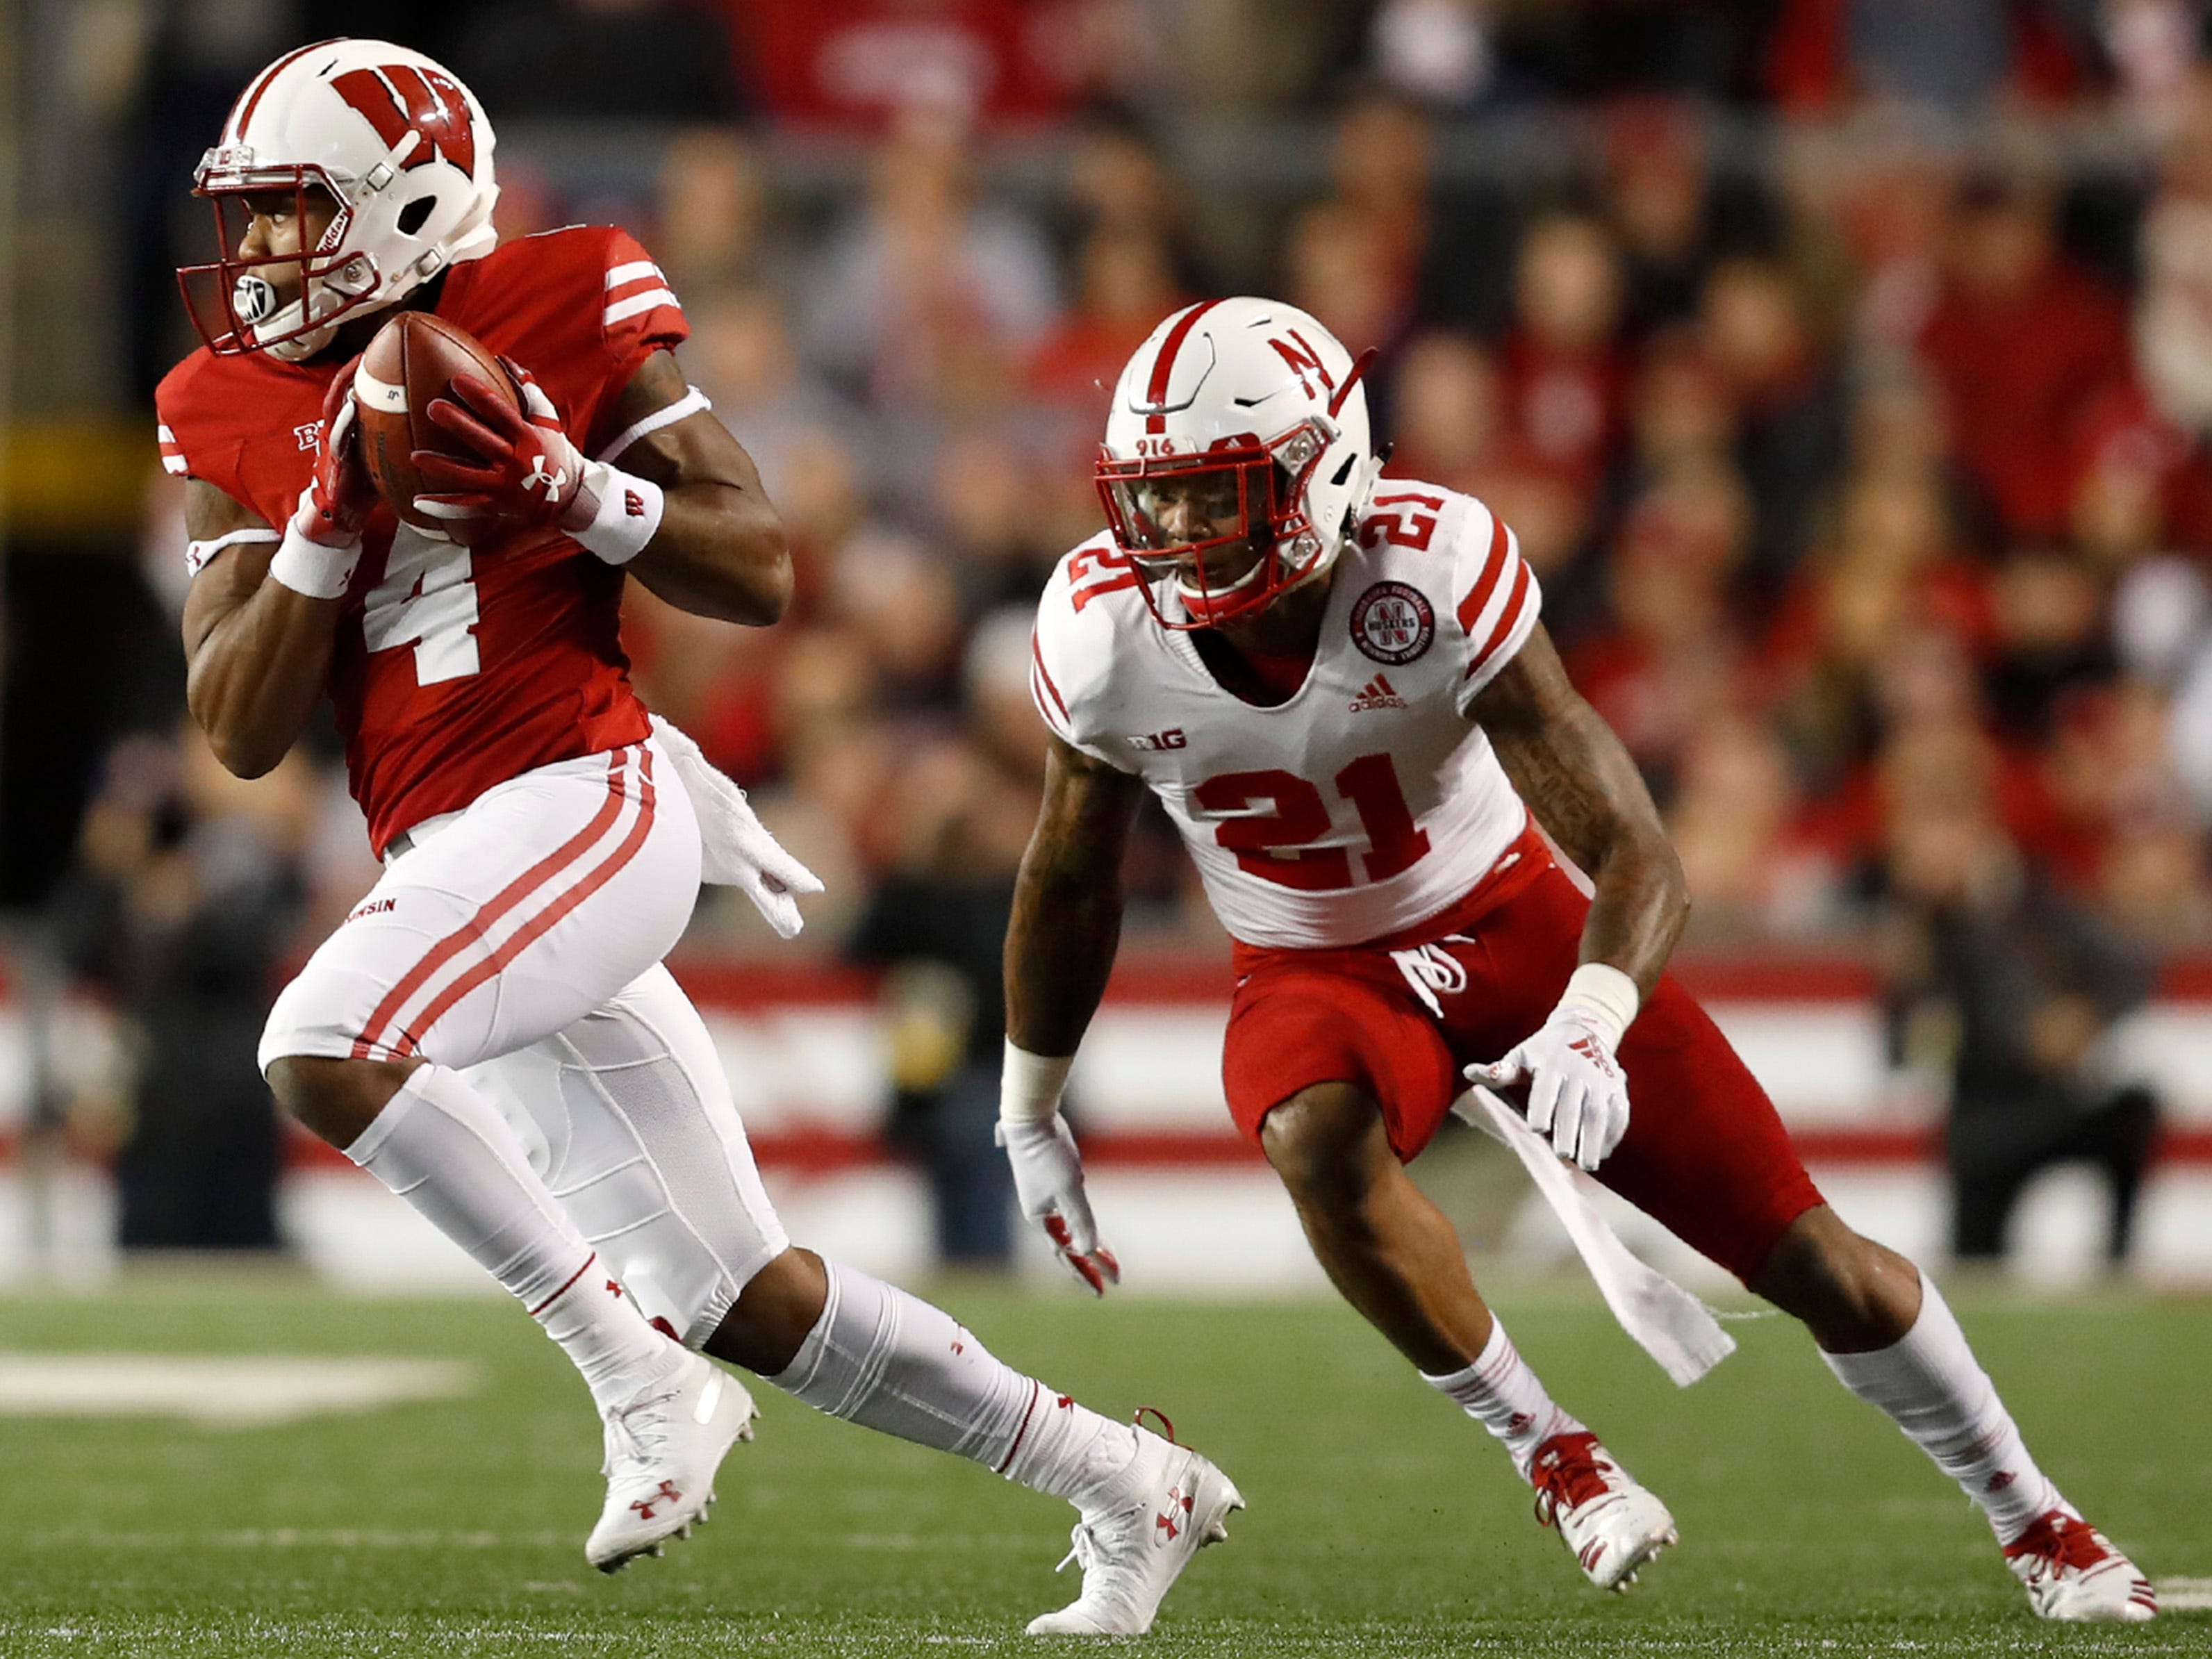 Wisconsin wide receiver A.J. Taylor catches a pass while being covered by Nebraska defensive back Lamar Jackson on Saturday night.